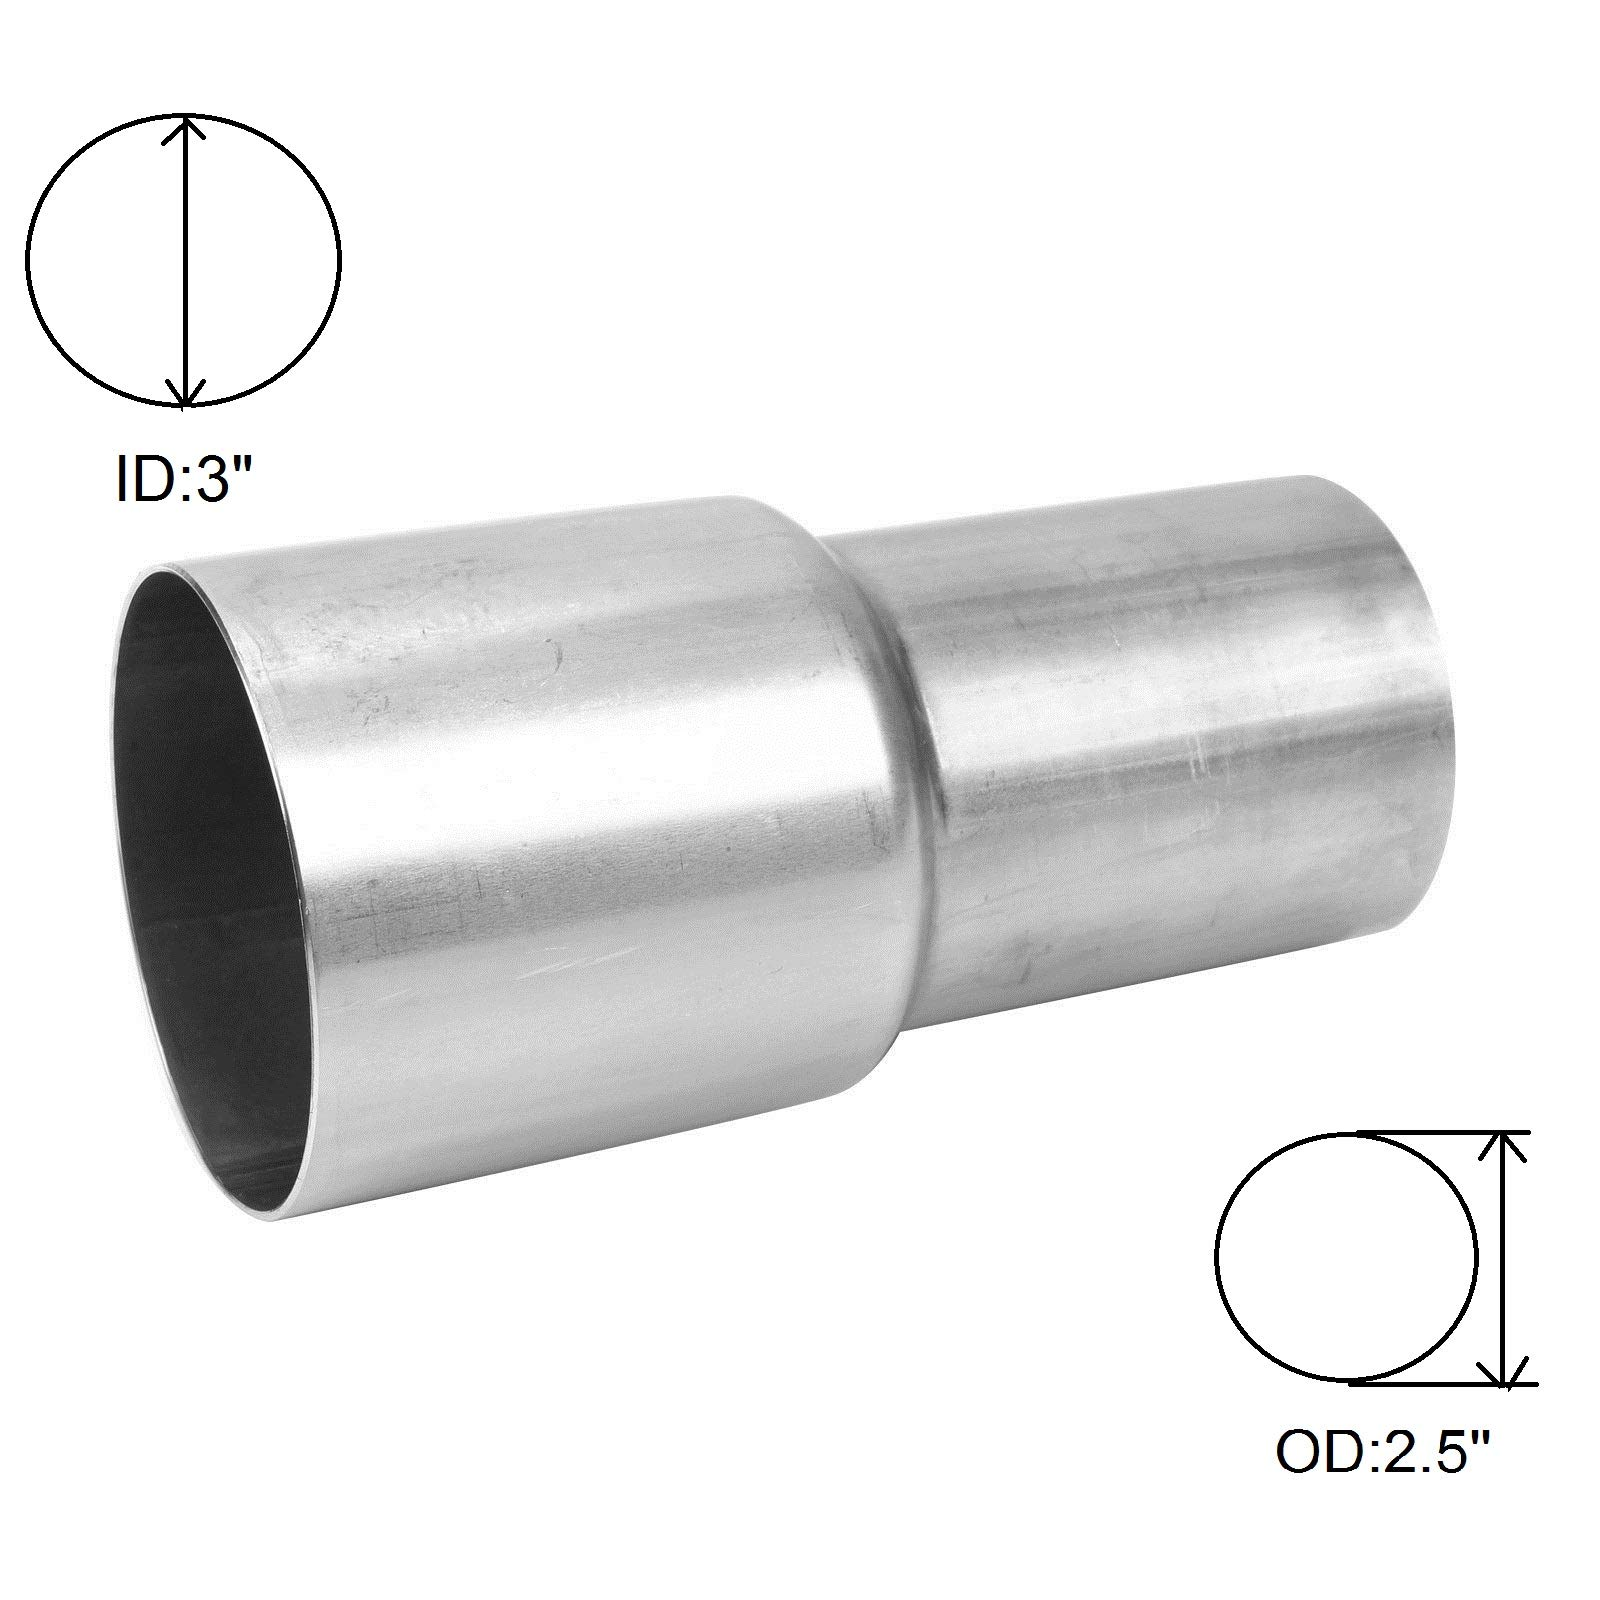 yjracing Universal 3'' ID to 2.5'' OD Exhaust Pipe Adapter Connector Reducer Stainless Steel